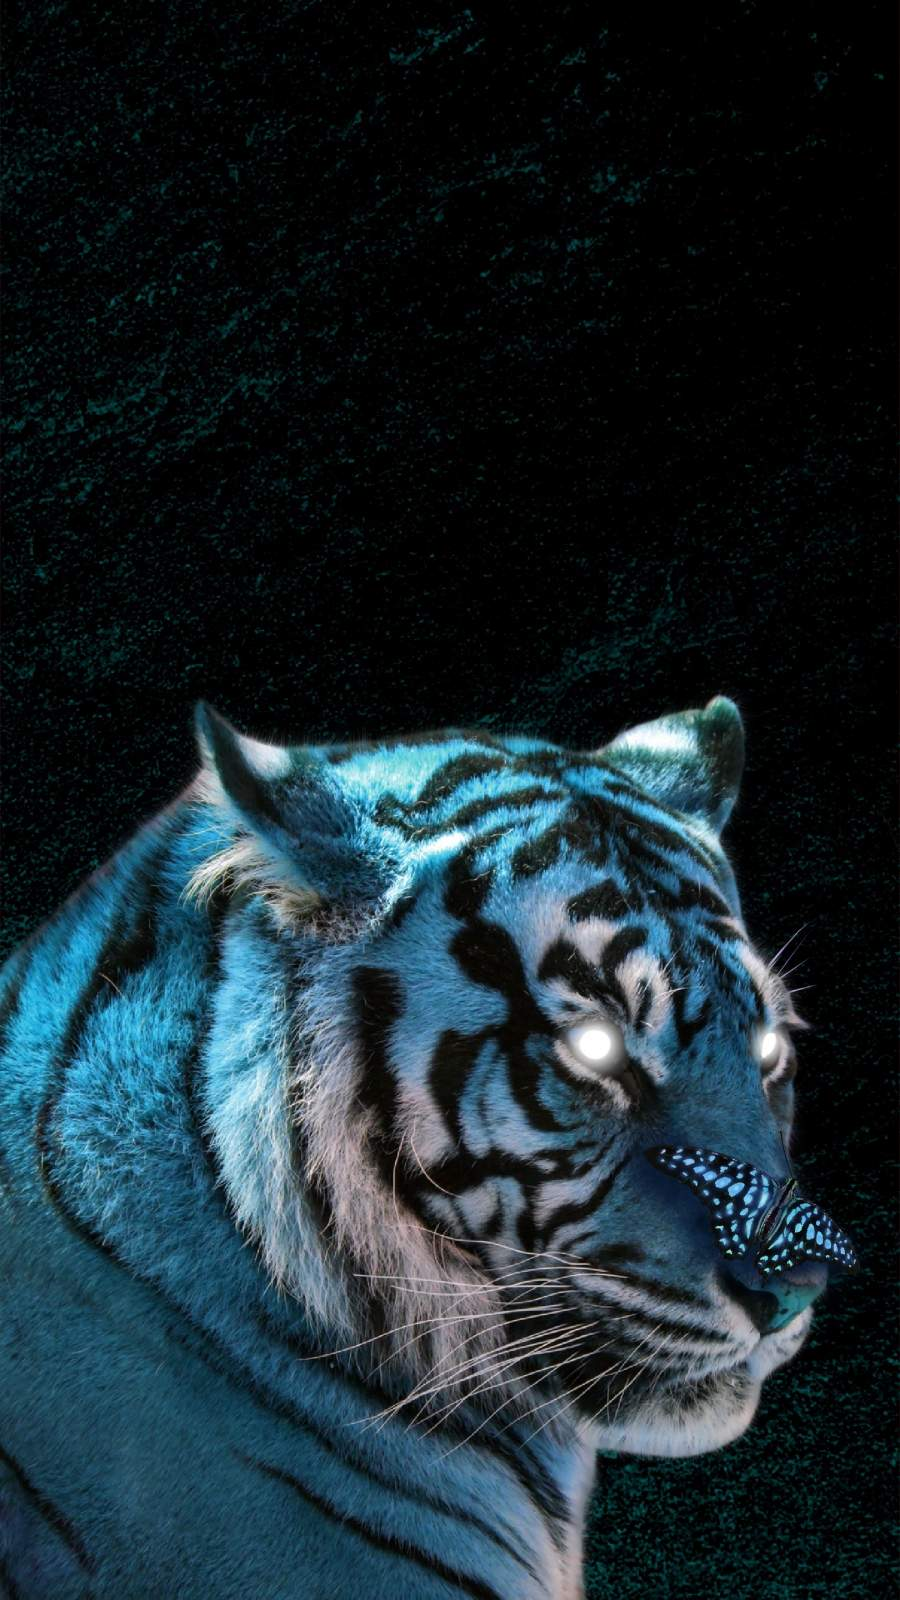 The Tiger Iphone Wallpaper Iphone Wallpapers Iphone Wallpapers